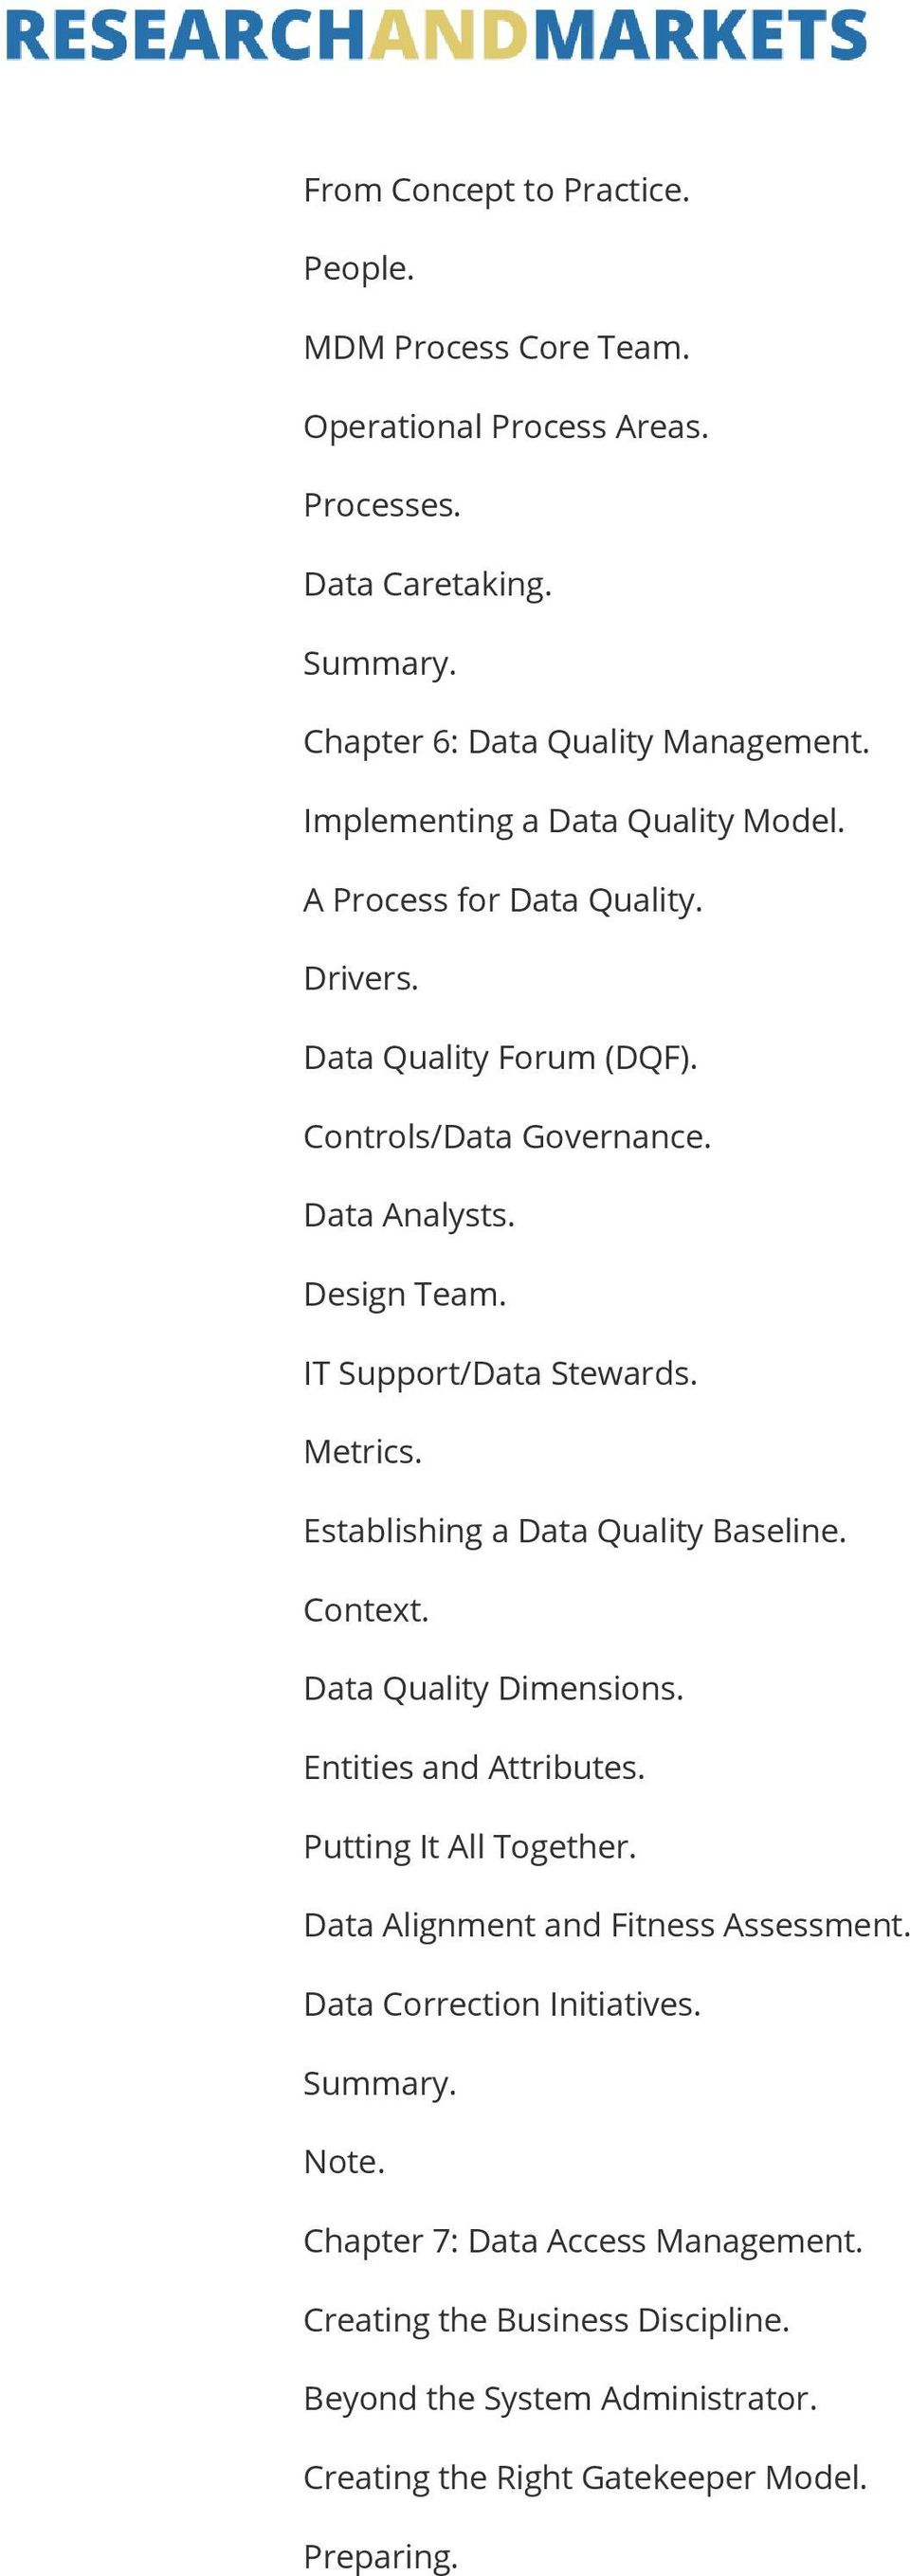 IT Support/Data Stewards. Metrics. Establishing a Data Quality Baseline. Context. Data Quality Dimensions. Entities and Attributes. Putting It All Together.